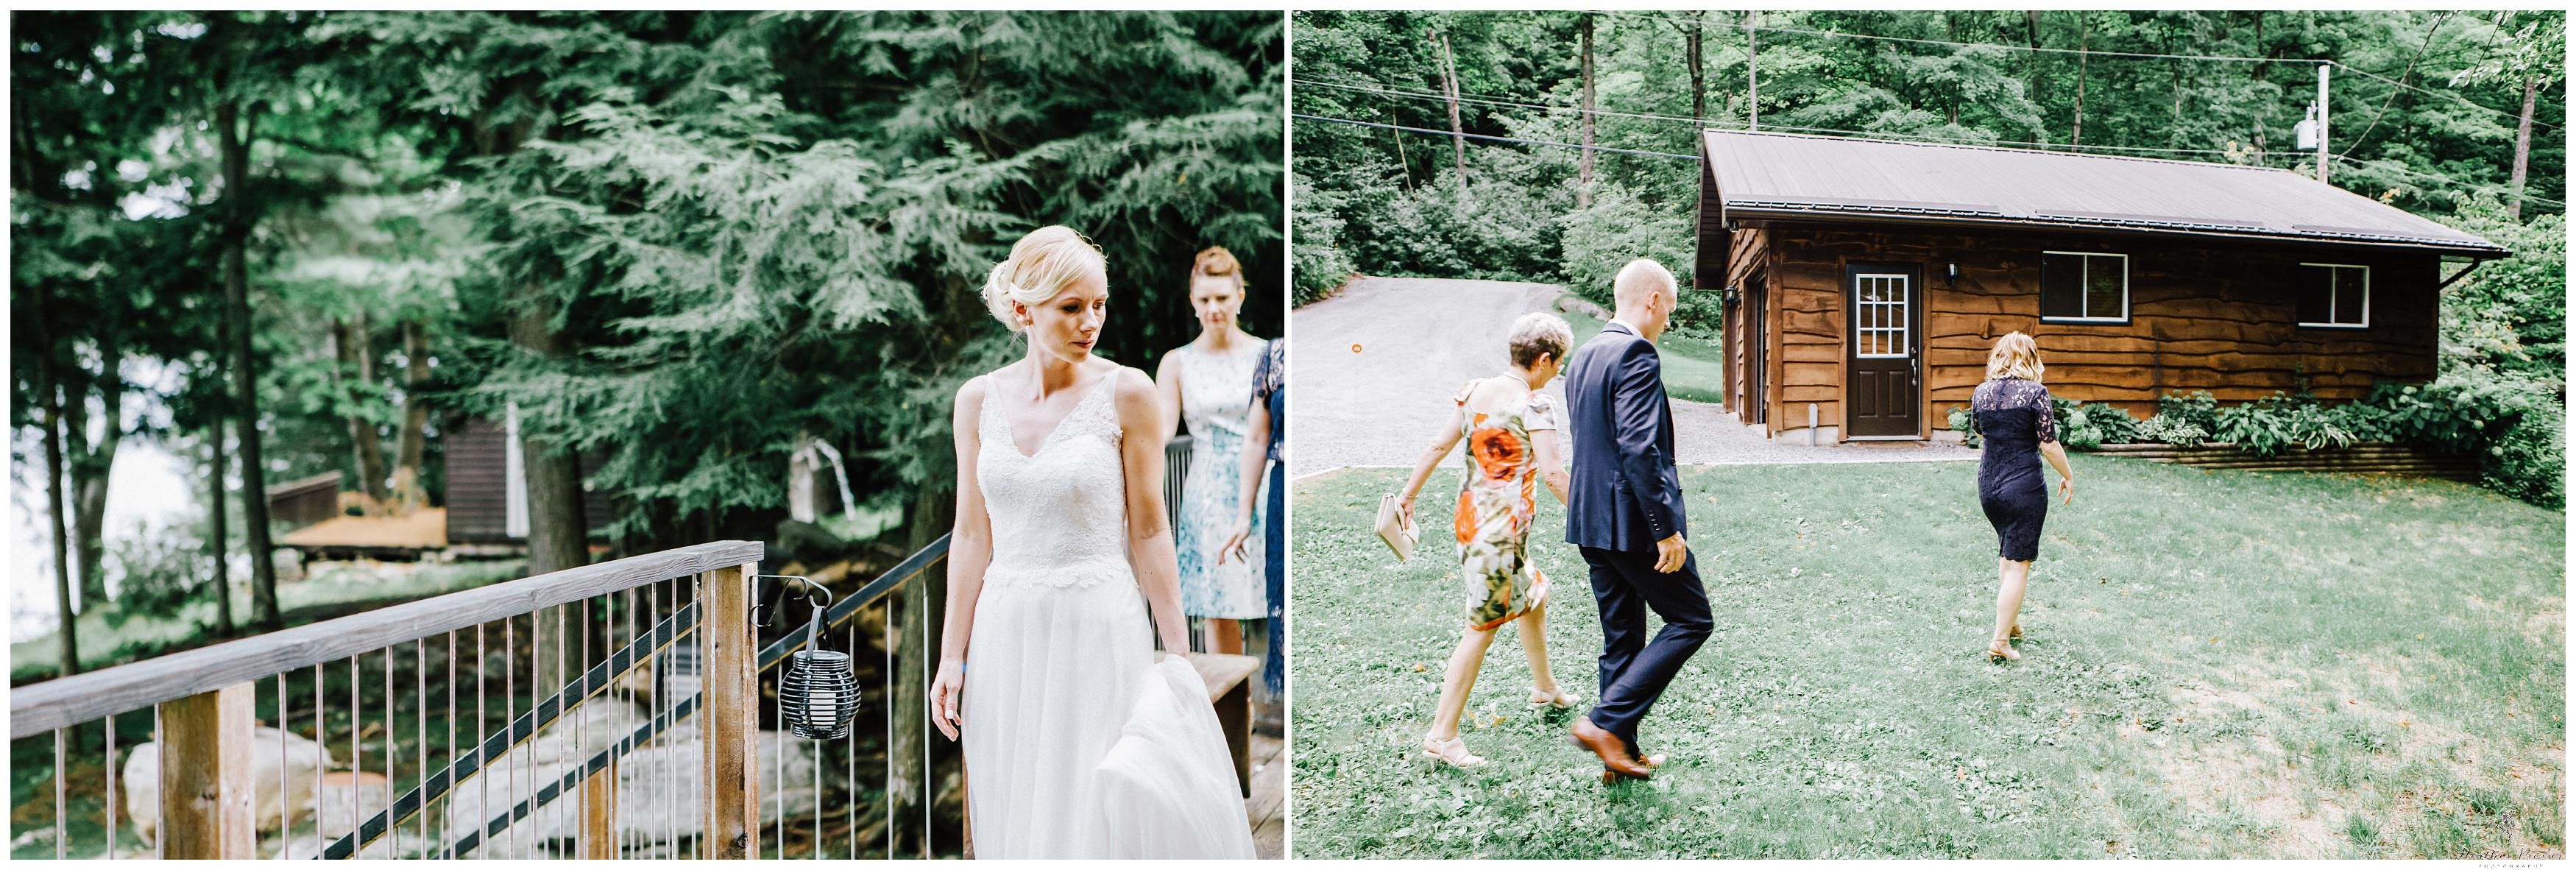 Haliburton Cottage Wedding_1255-1.jpg